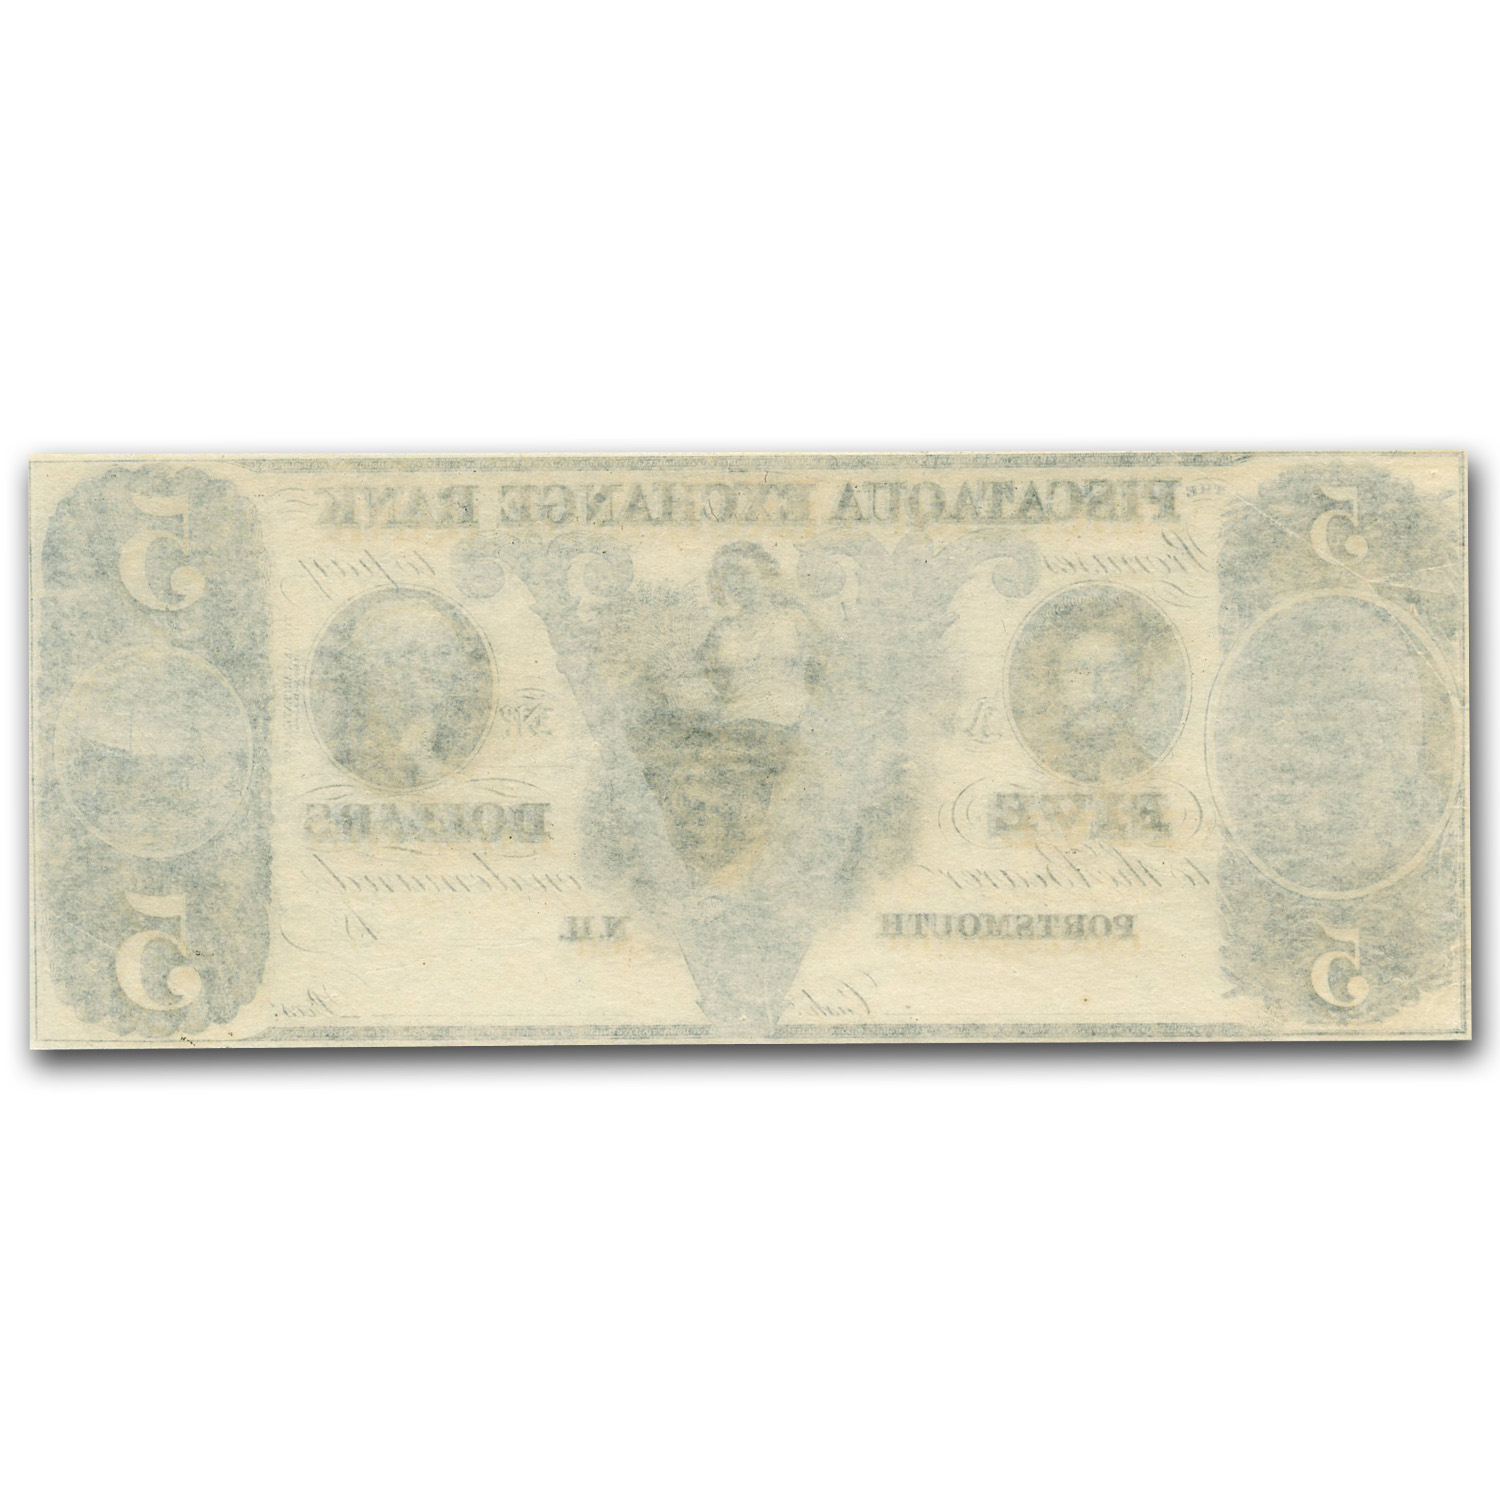 18__ Piscataqua Exchange Bank, Portsmouth $5.00 Note NH-285 CU